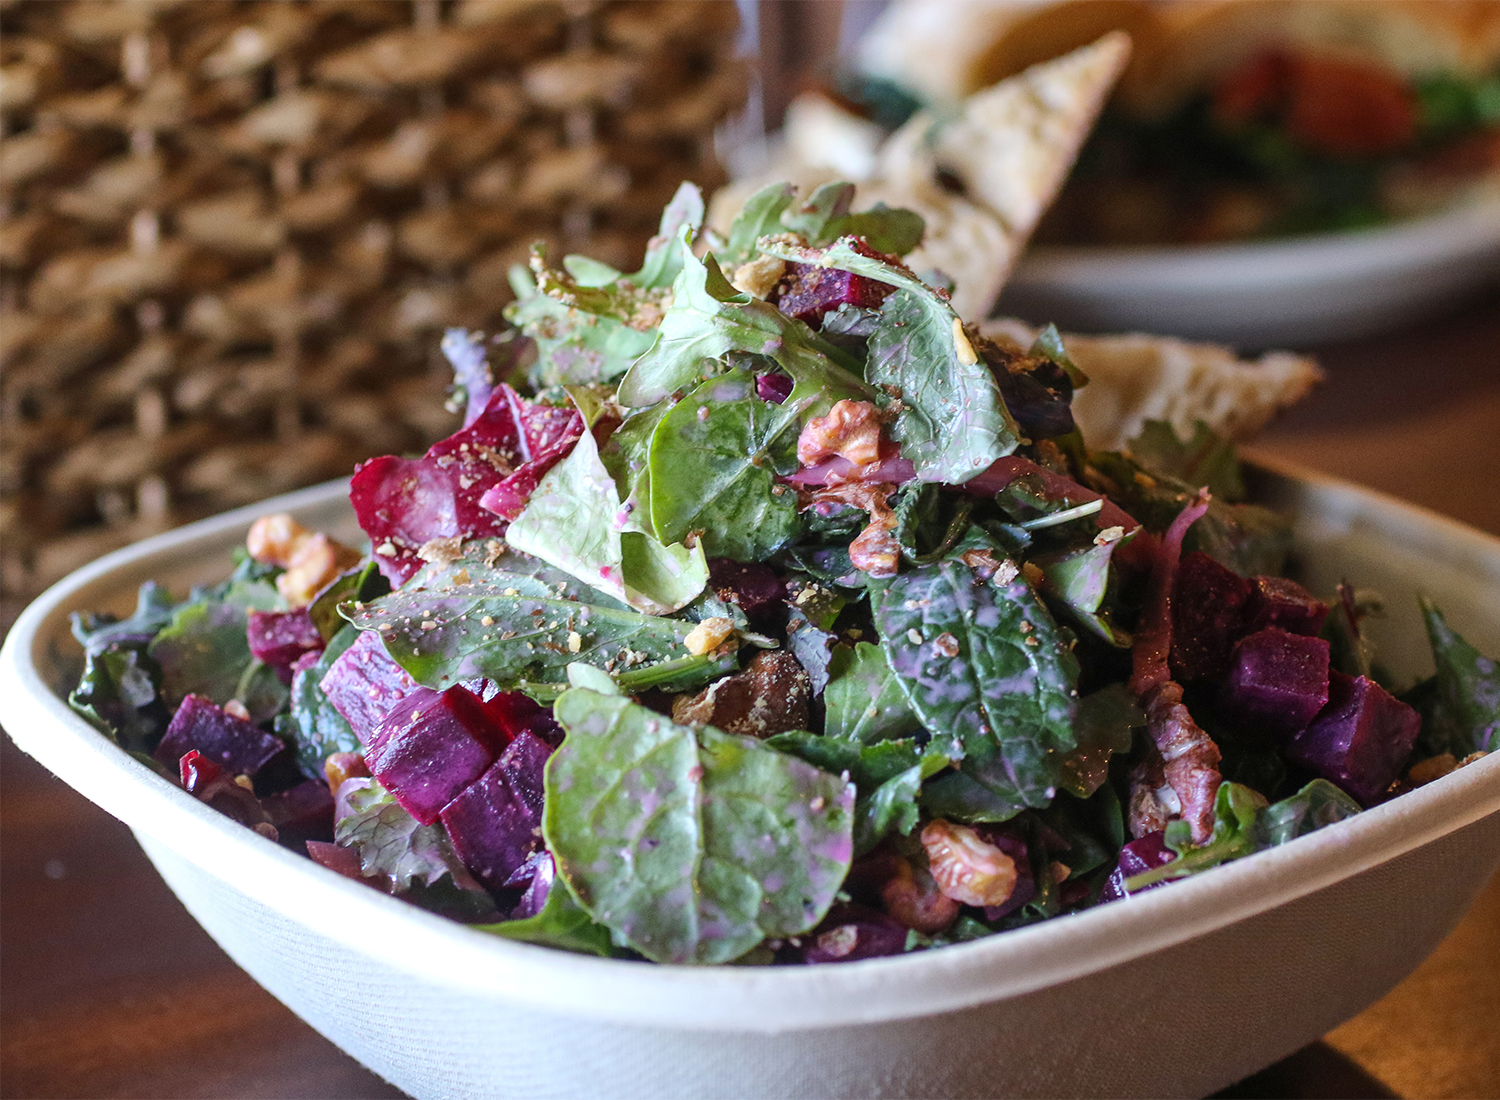 Beets and greens salad with walnuts, pickled onions, black pepper buttermilk dressing. Heather Irwin/PD